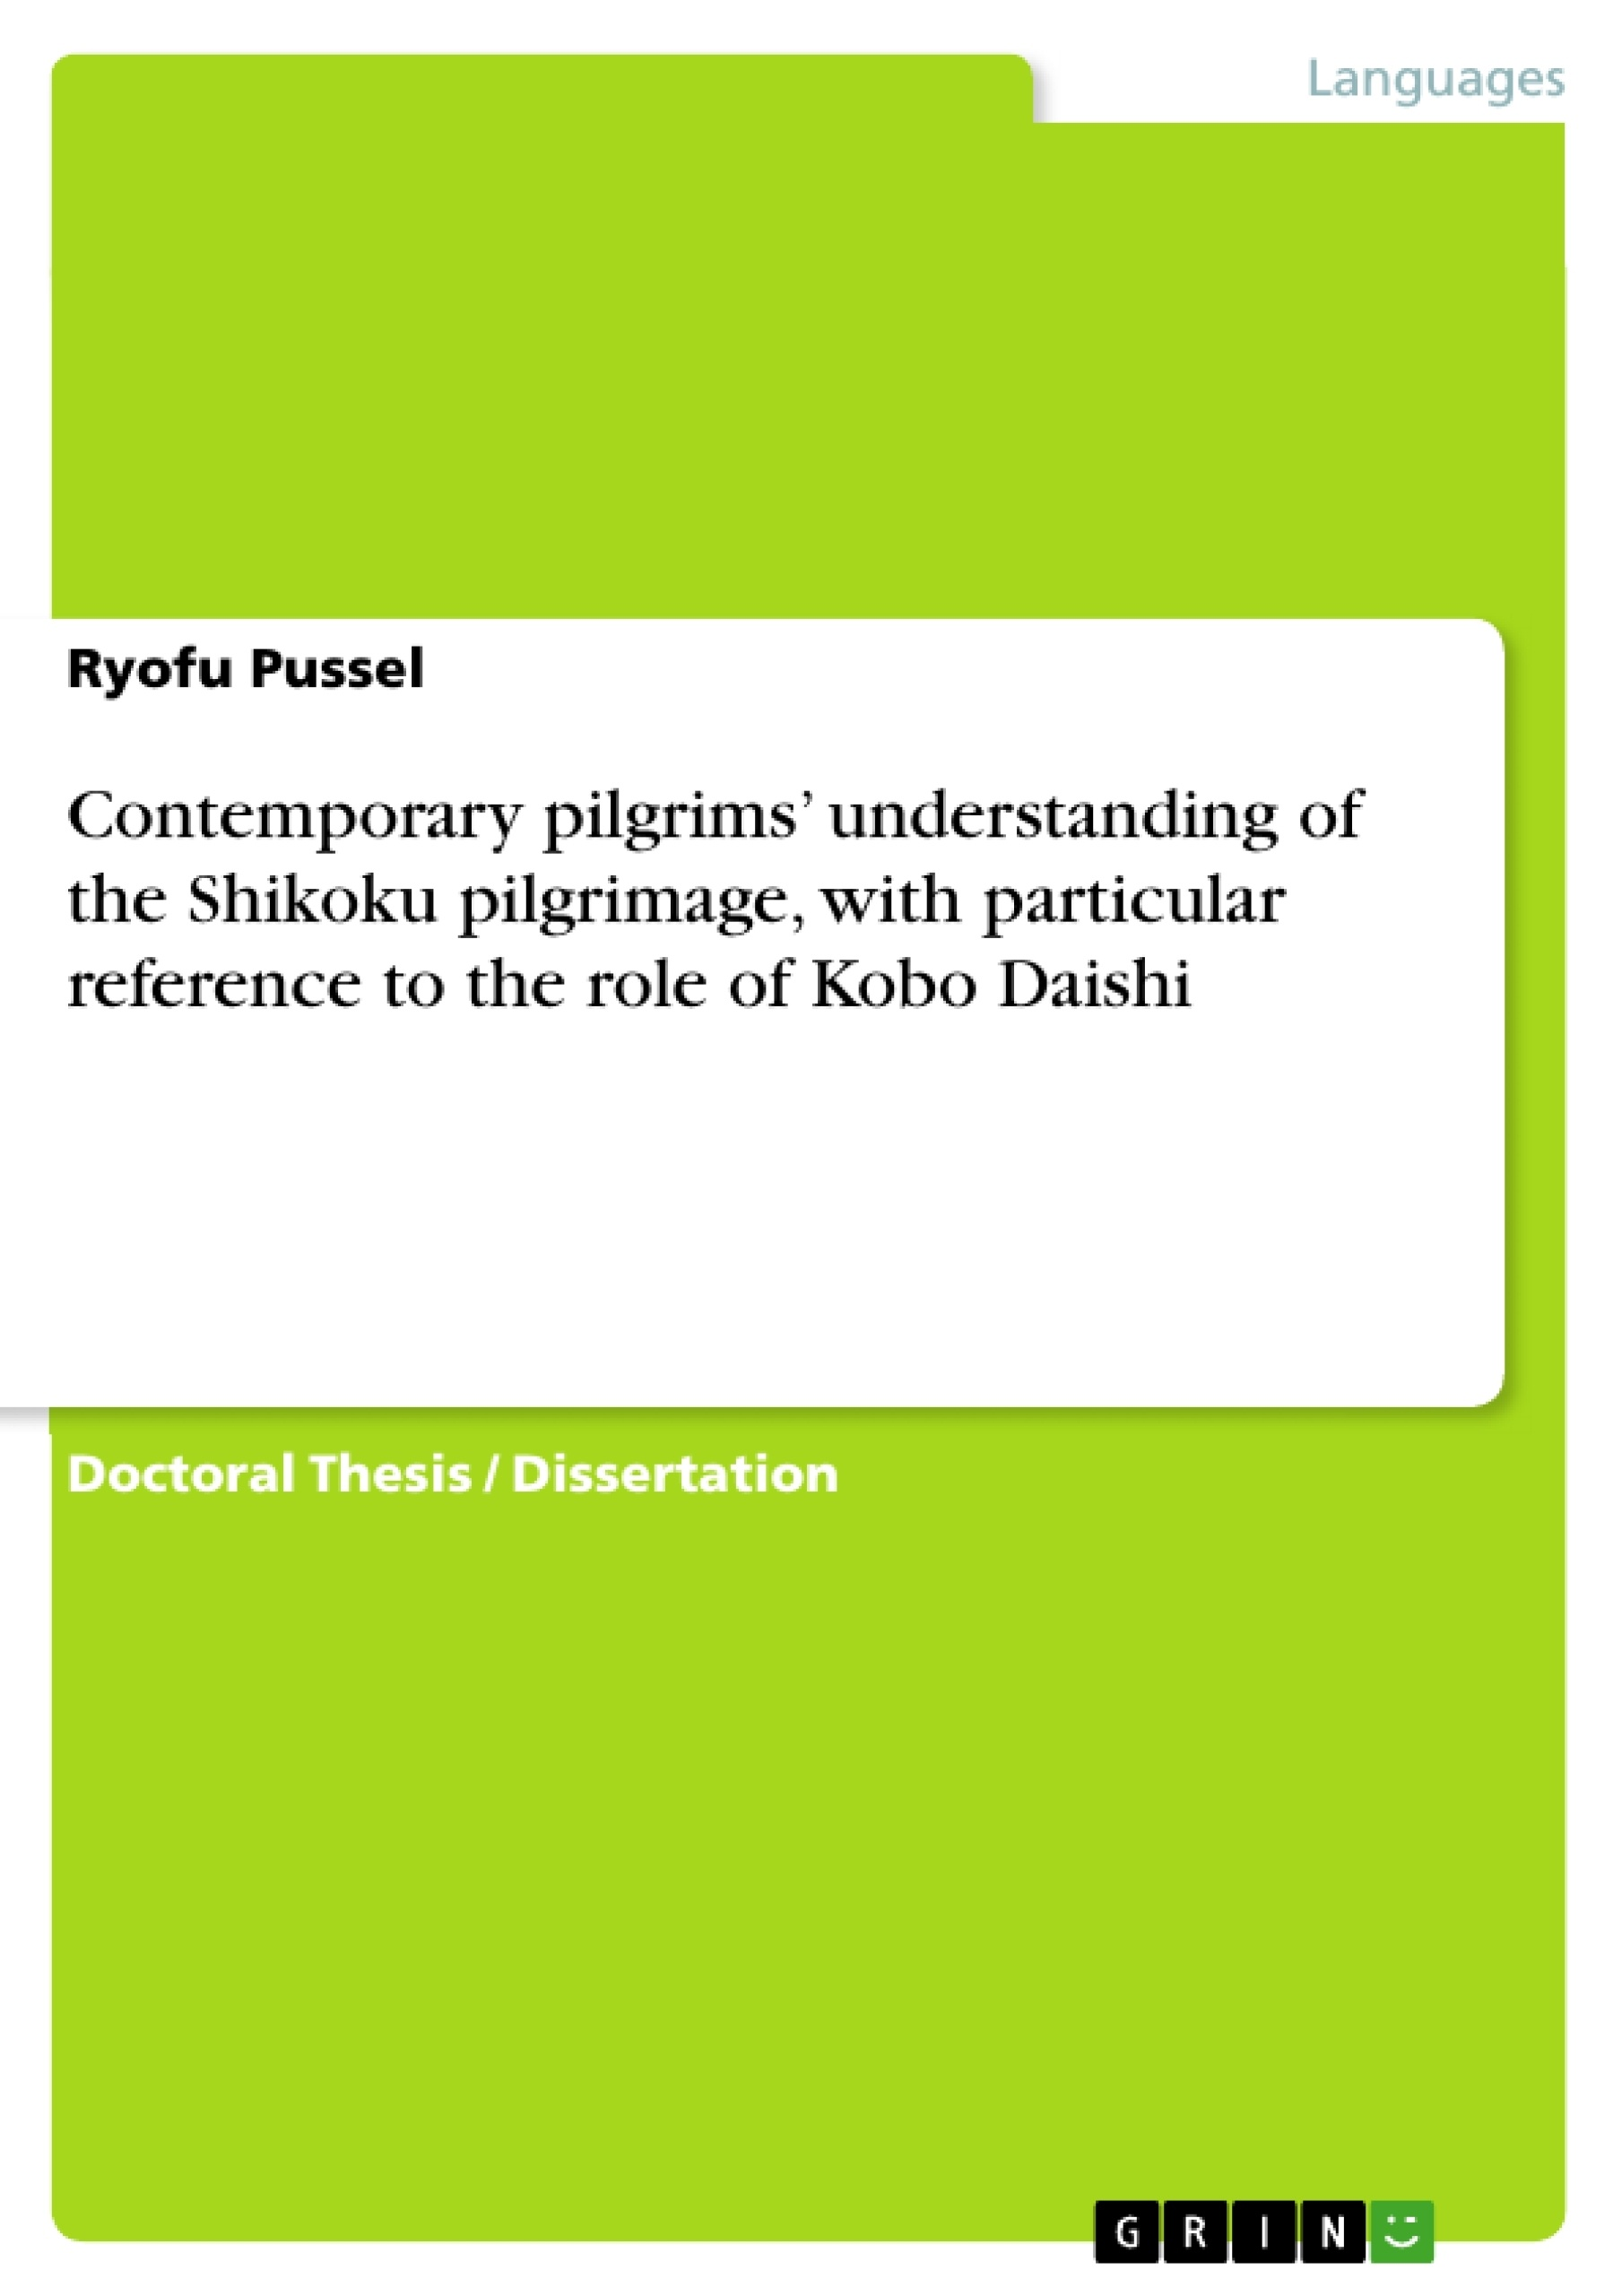 Title: Contemporary pilgrims' understanding of the Shikoku pilgrimage, with particular reference to the role of Kobo Daishi